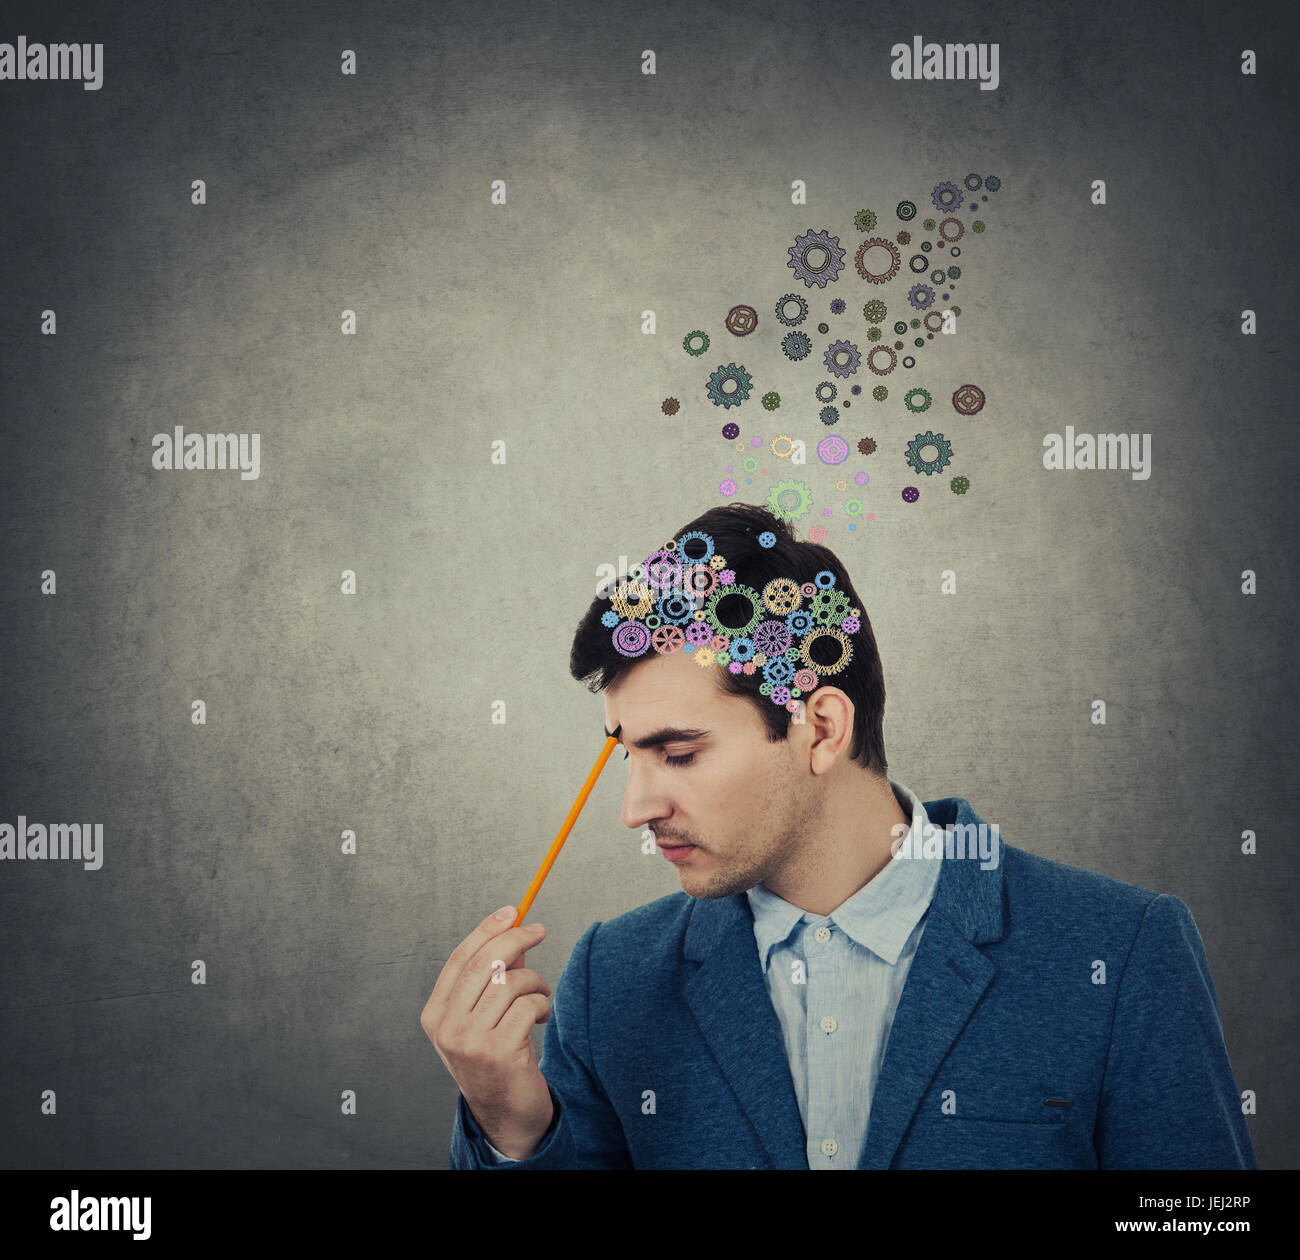 Successful businessman thinking and creating  with a pencil pointed to his head a coloruful brain made from gear - Stock Image